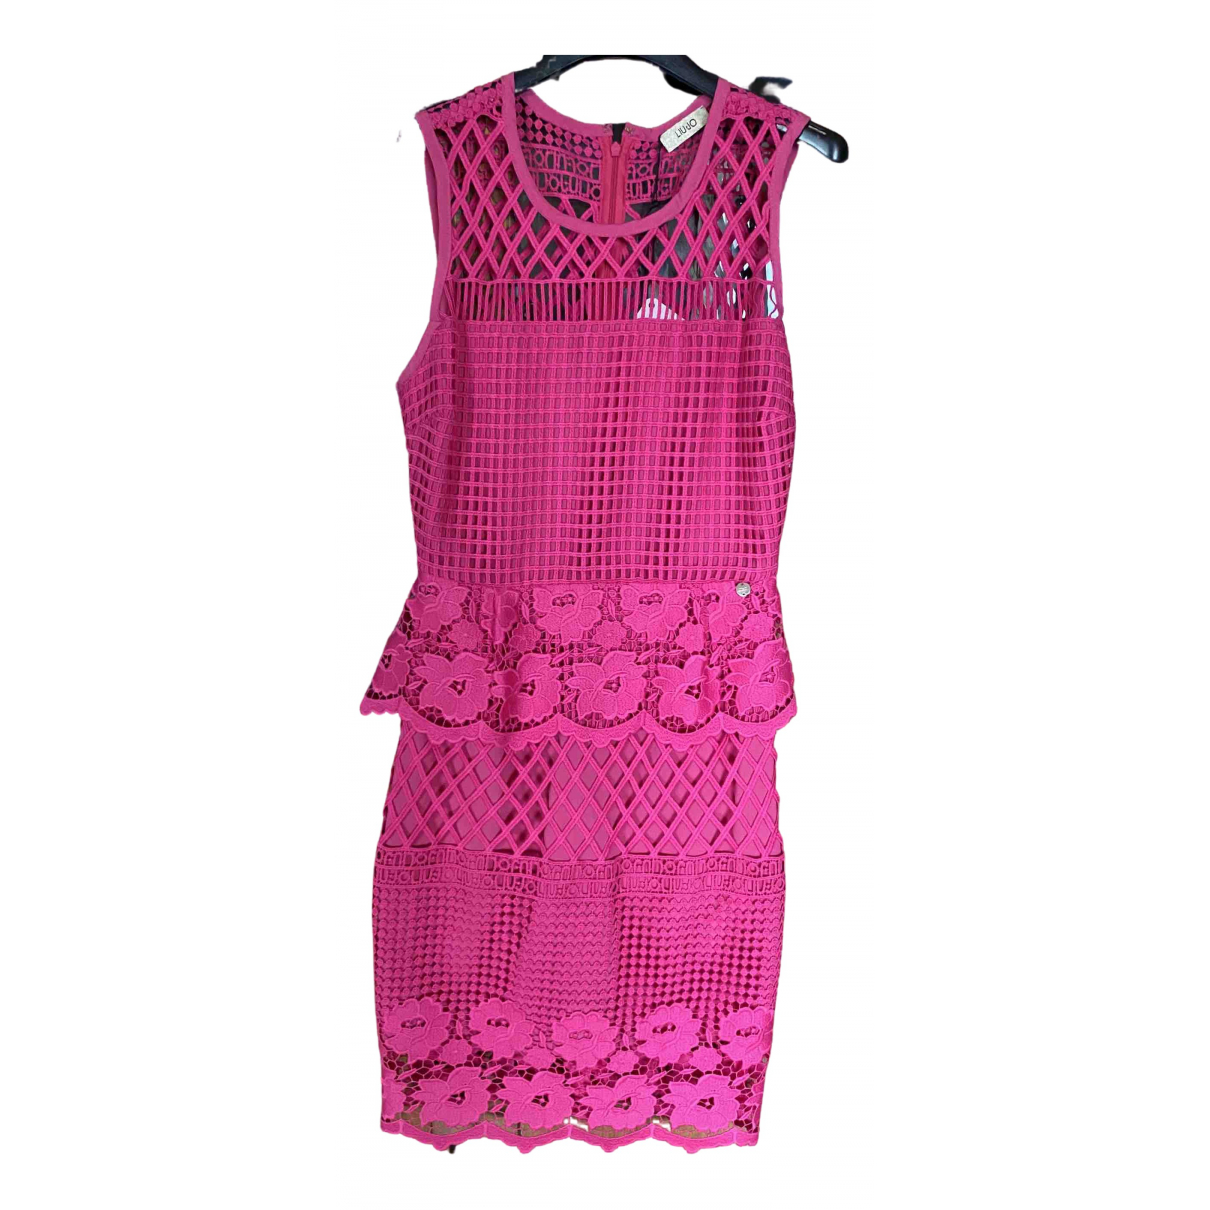 Liu.jo \N Lace dress for Women 40 IT